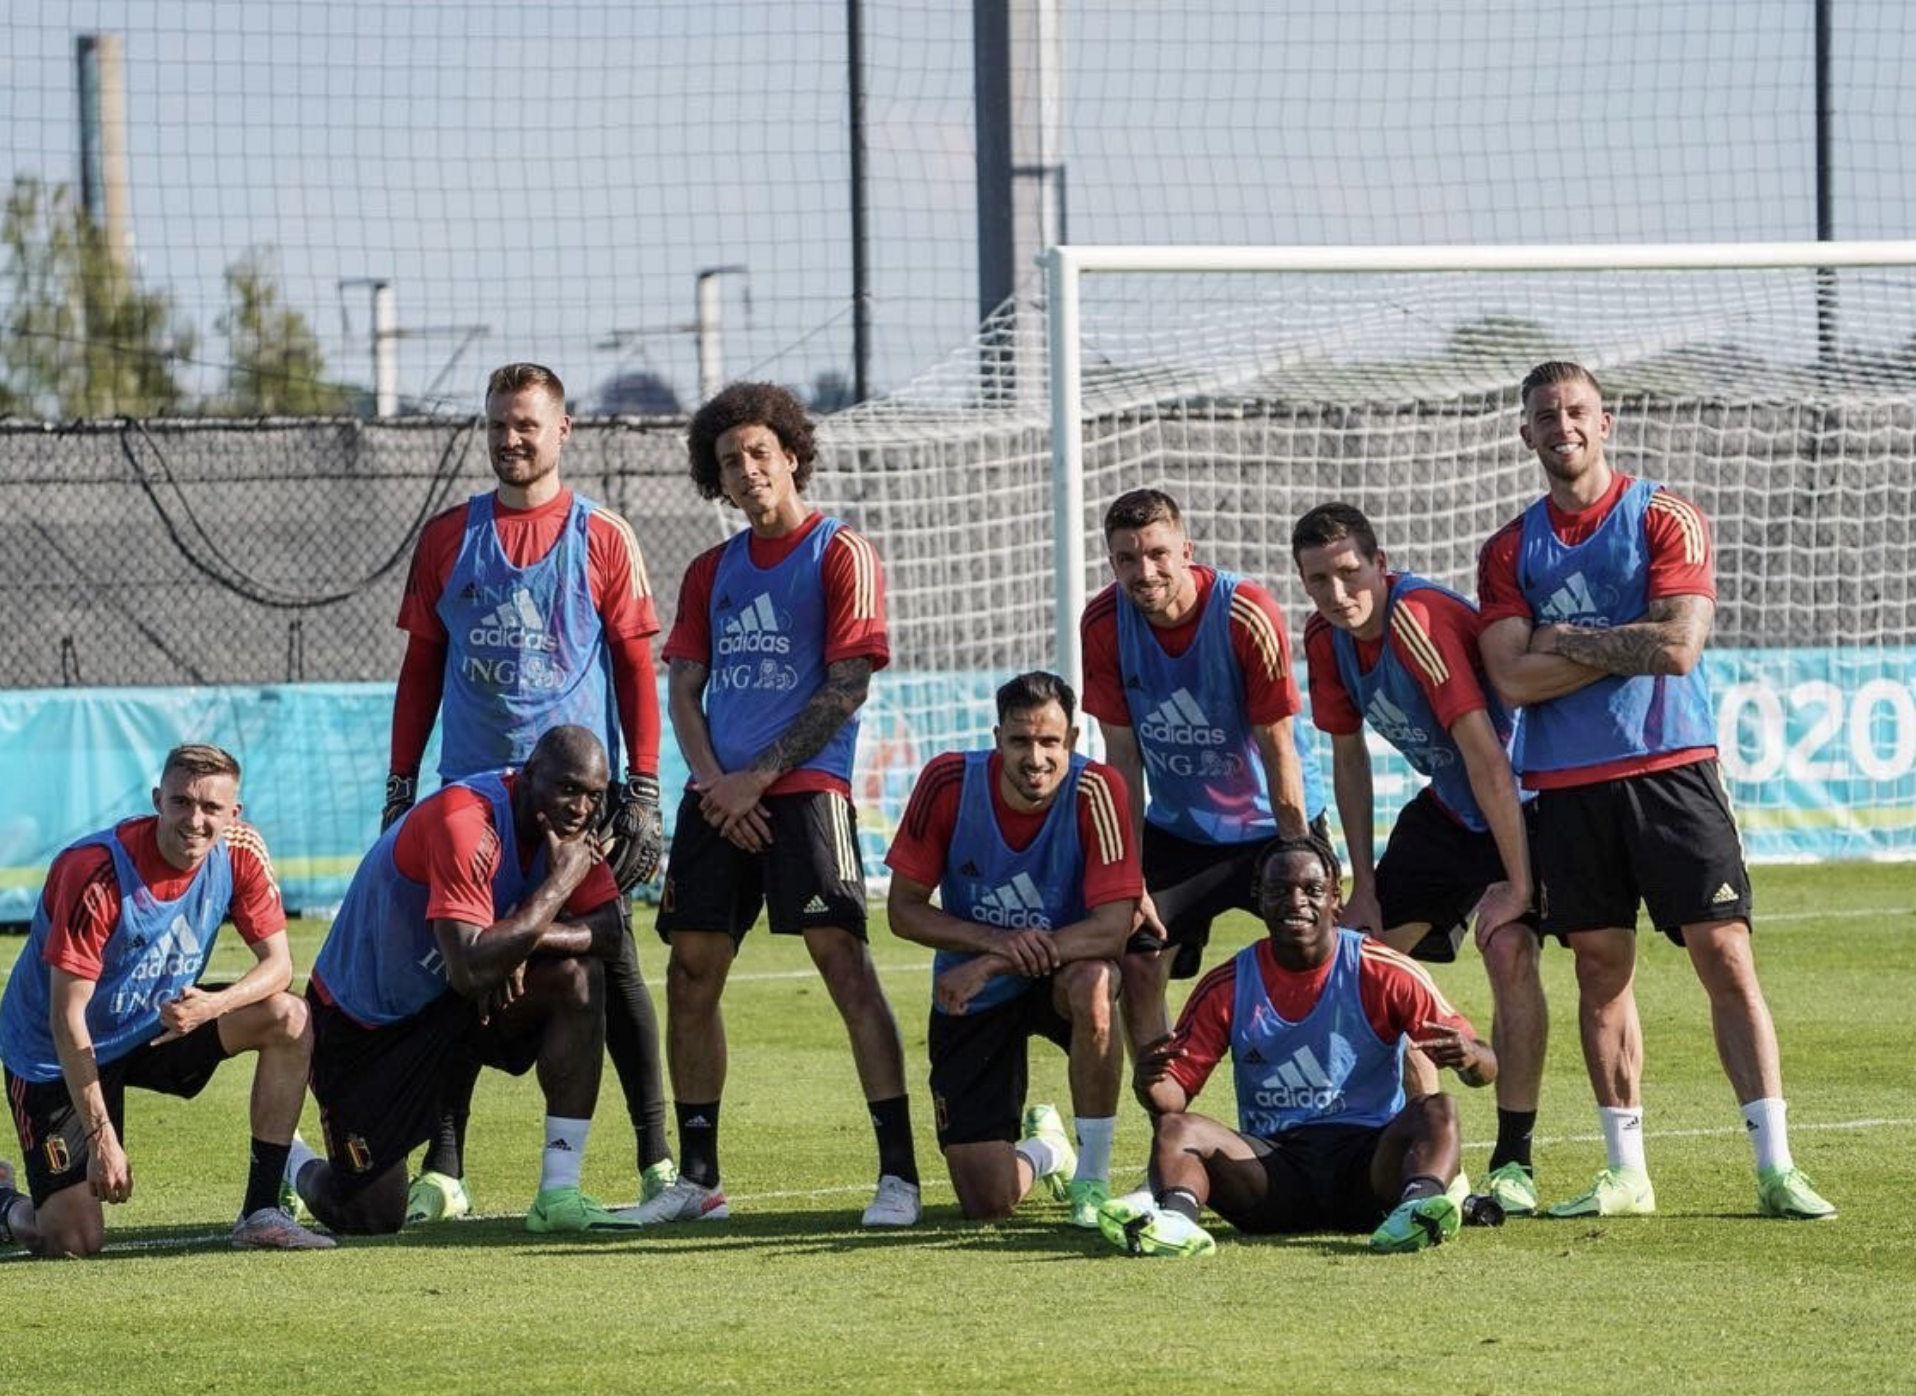 Euro 2020: It's now or never for the Belgian golden generation